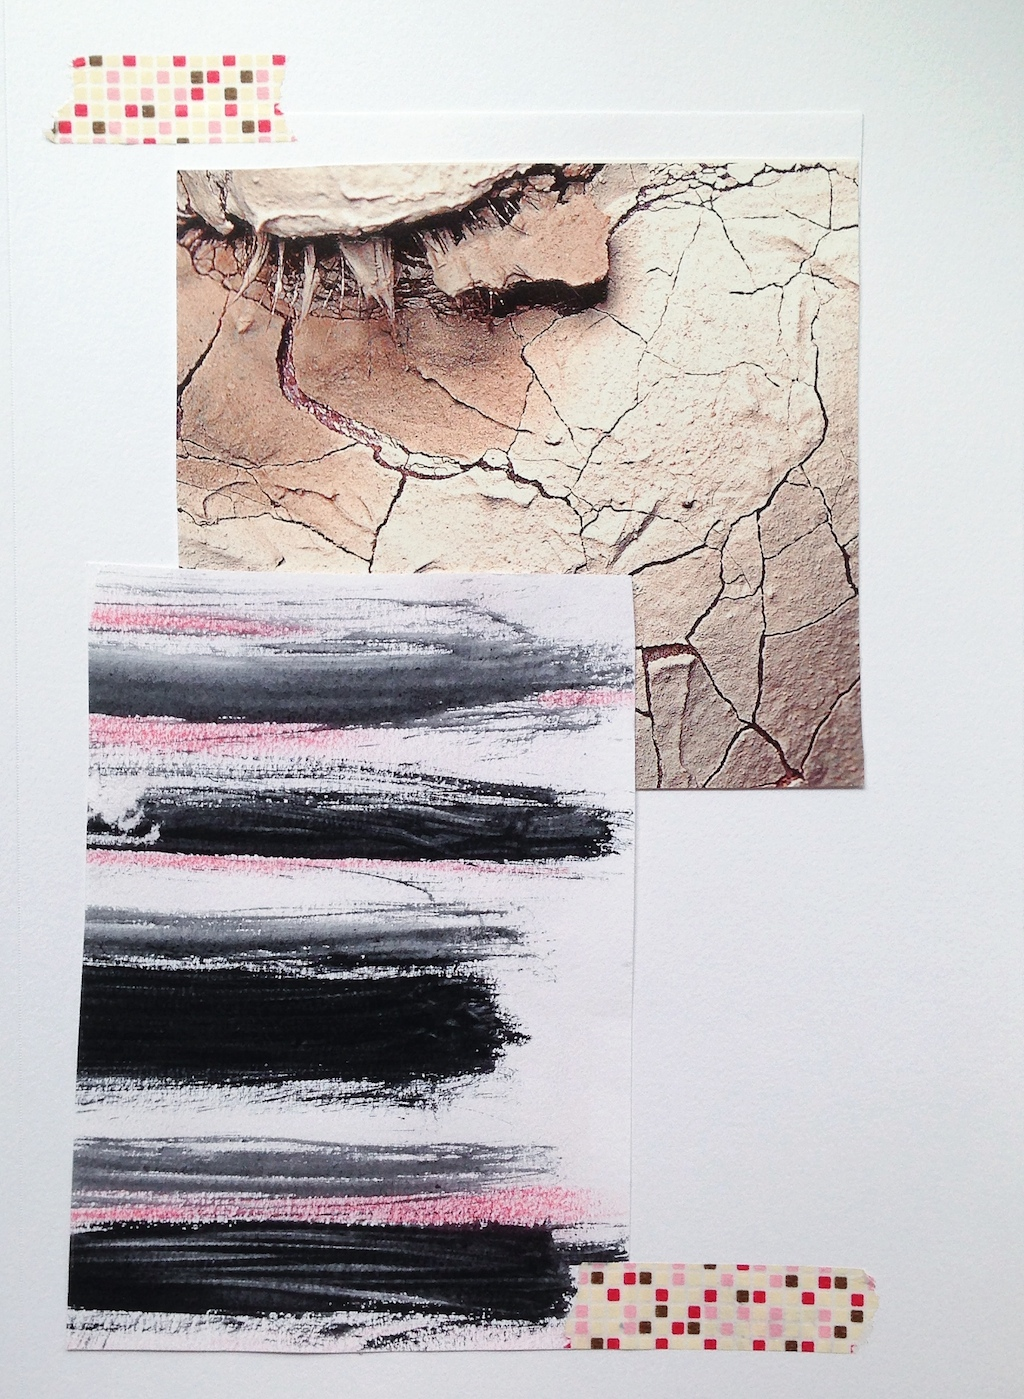 Cracks | Mixed Media Collage by Melanie Biehle